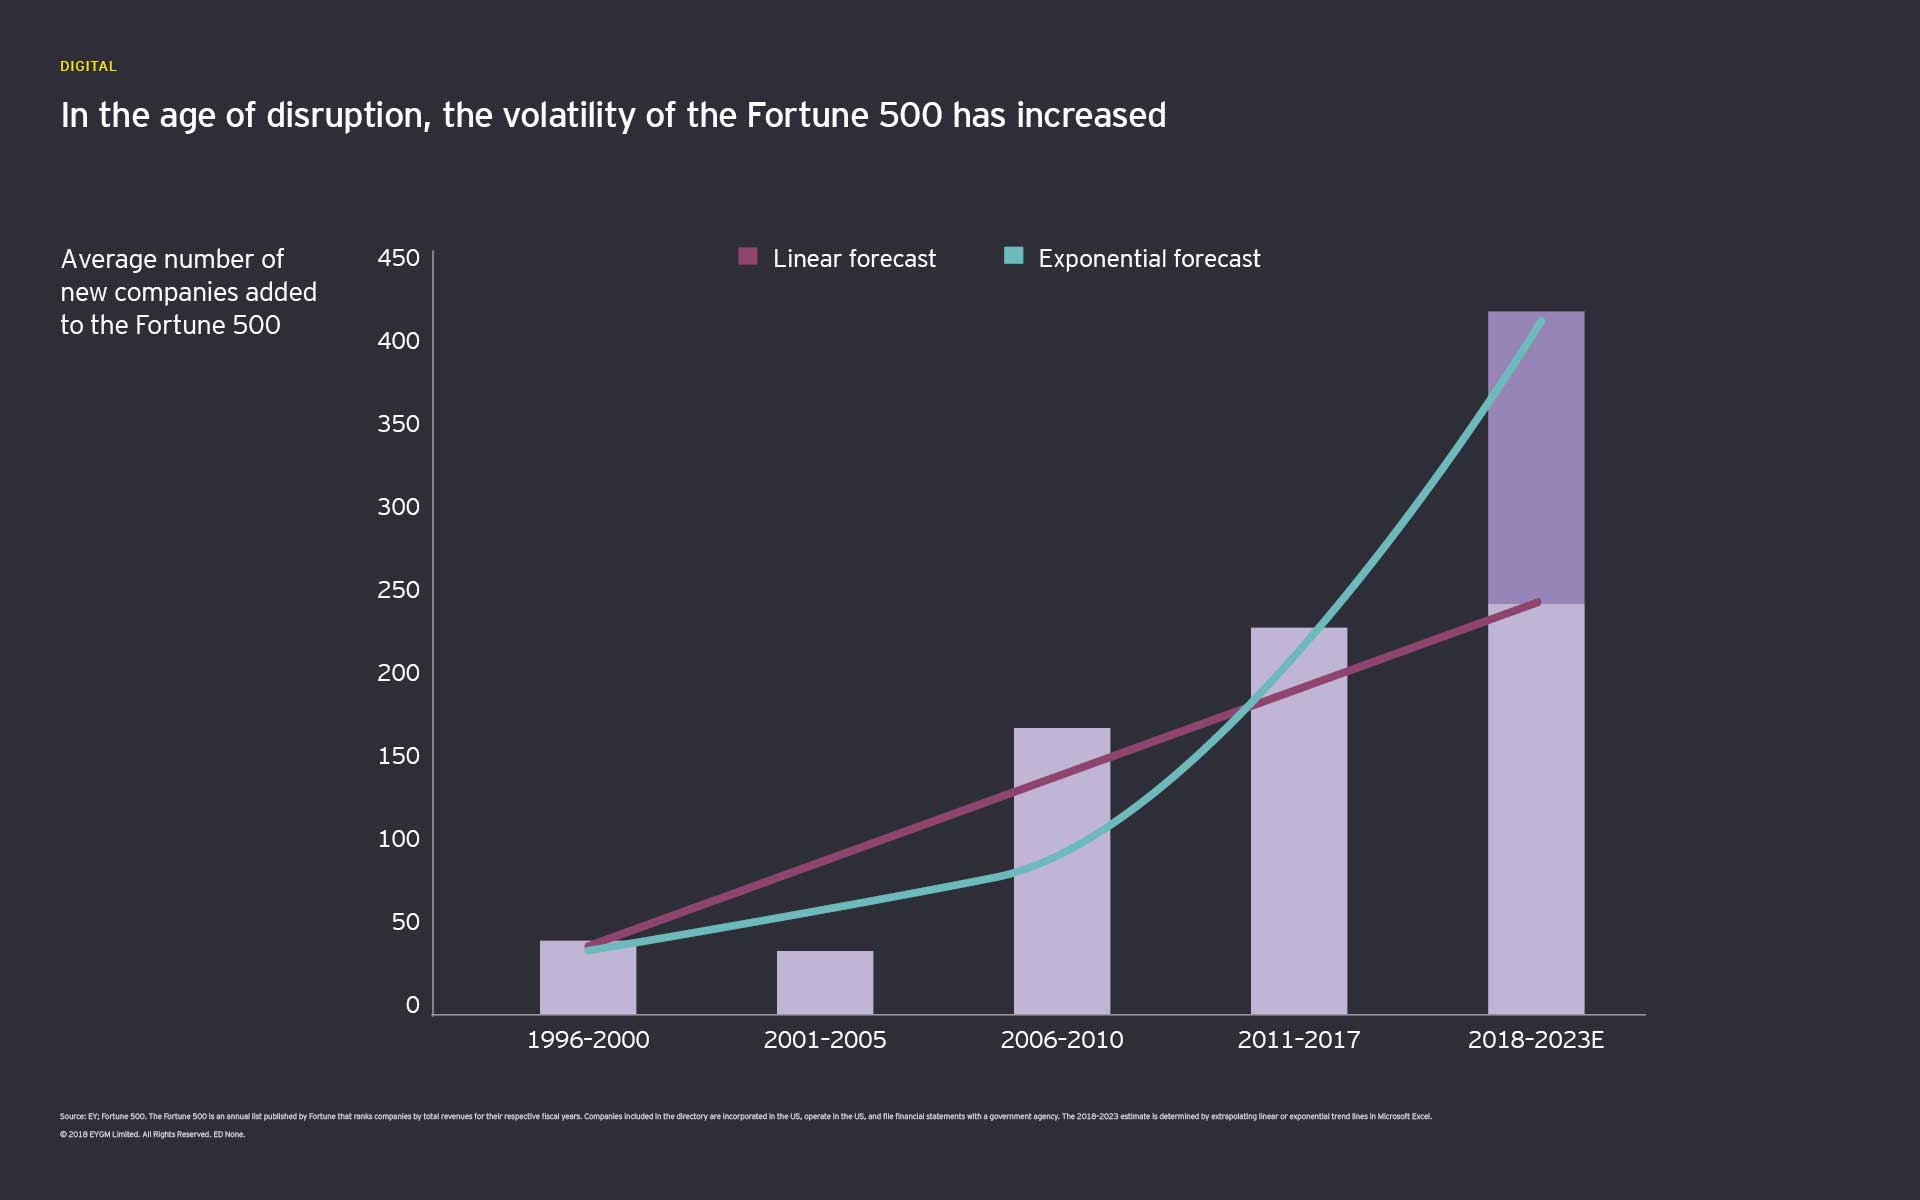 In the age of disruption, the vitality of the Fortune 500 has increased